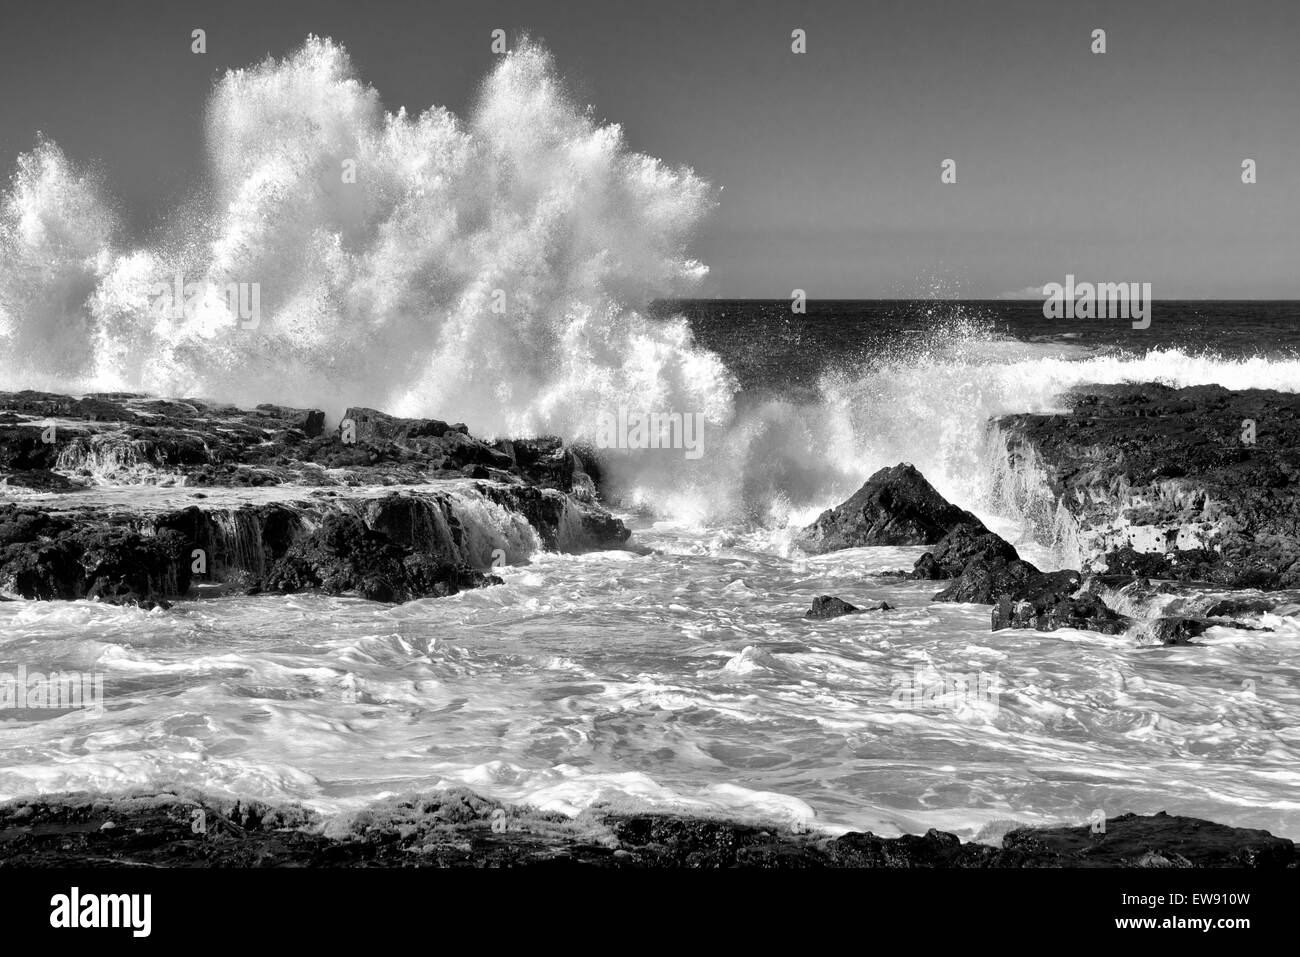 Breaking wave. Hawaii, The Big Island. - Stock Image